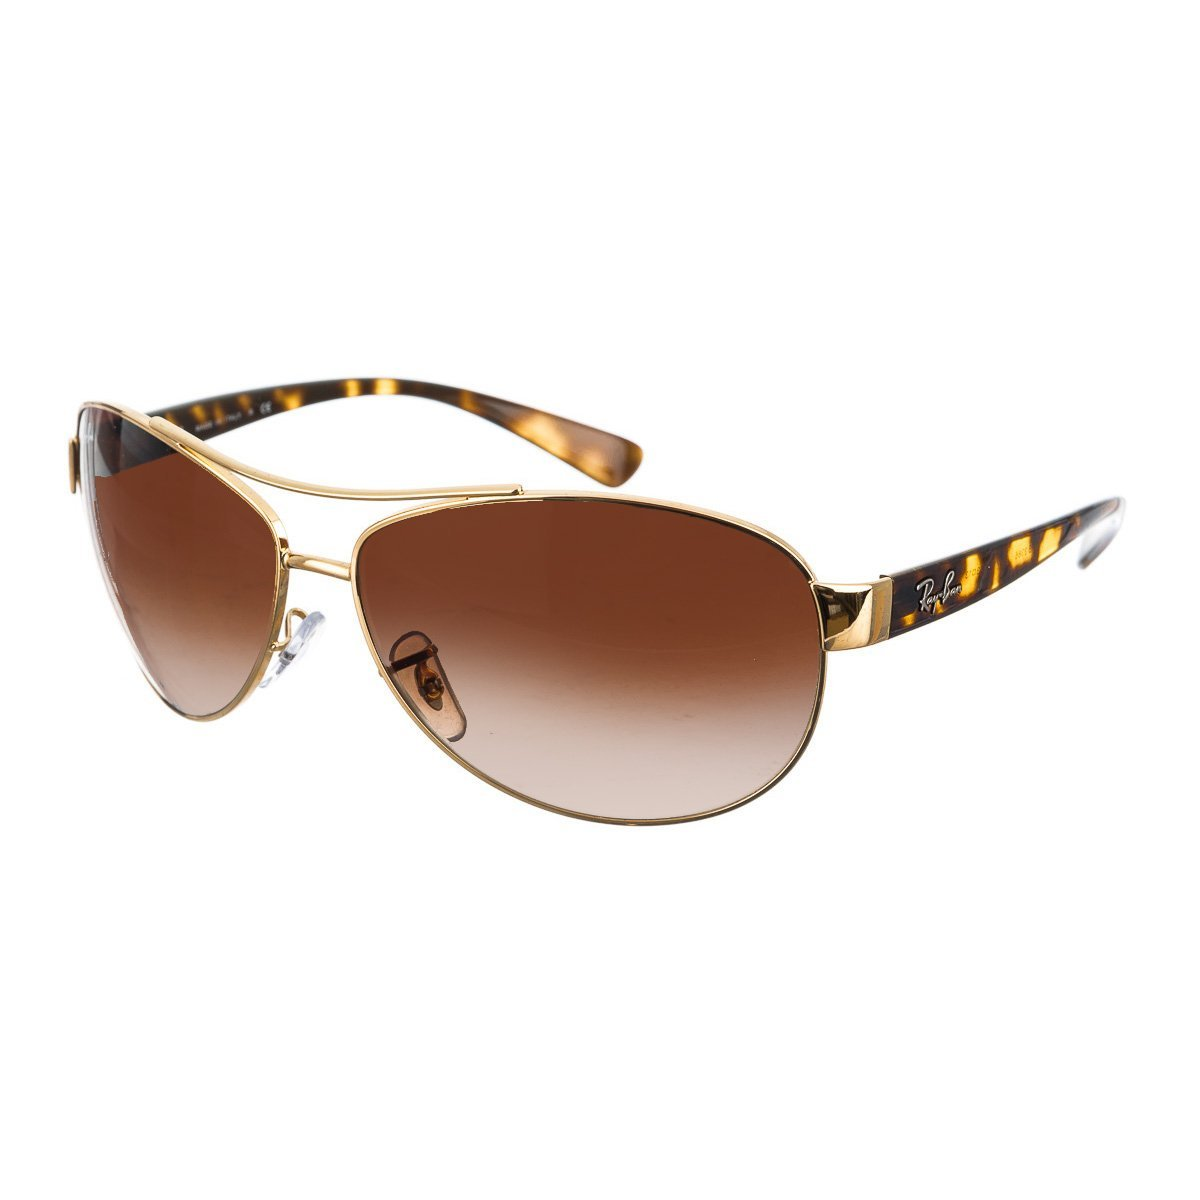 bab7e56d9a Amazon.com  Ray-Ban Sunglasses - RB3386   Frame  Gold Lens  Brown Gradient  (63mm)  Clothing